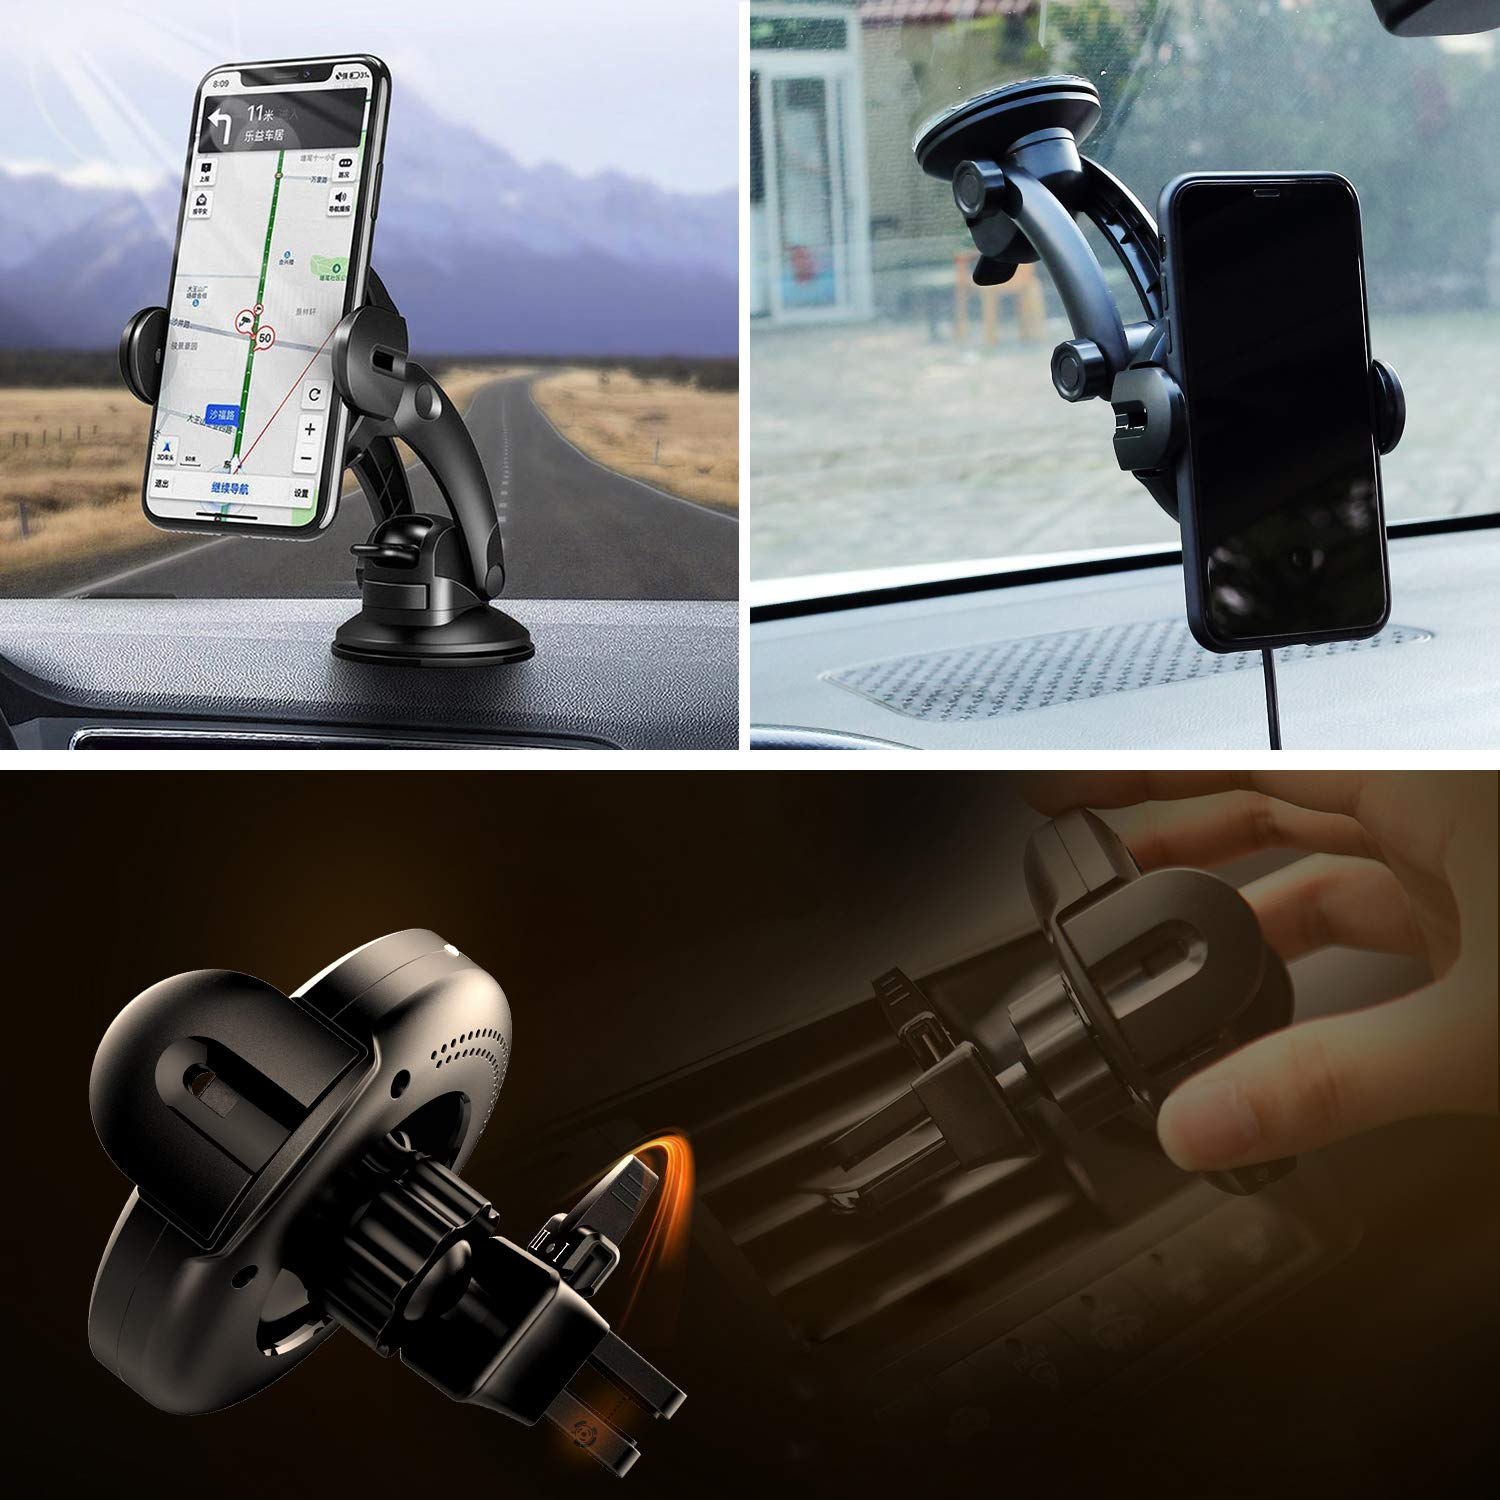 KOAKUMA Wireless Car Charger Mount, Automatic Clamping Car Mount Air Vent Phone Holder with 15W QI Fast Charging Compatible with iPhone X/XS Max/XS/XR/8/8 Plus, Samsung Galaxy S10/S10+/S9/S9+/Note 9/8 by KOAKUMA (Image #5)